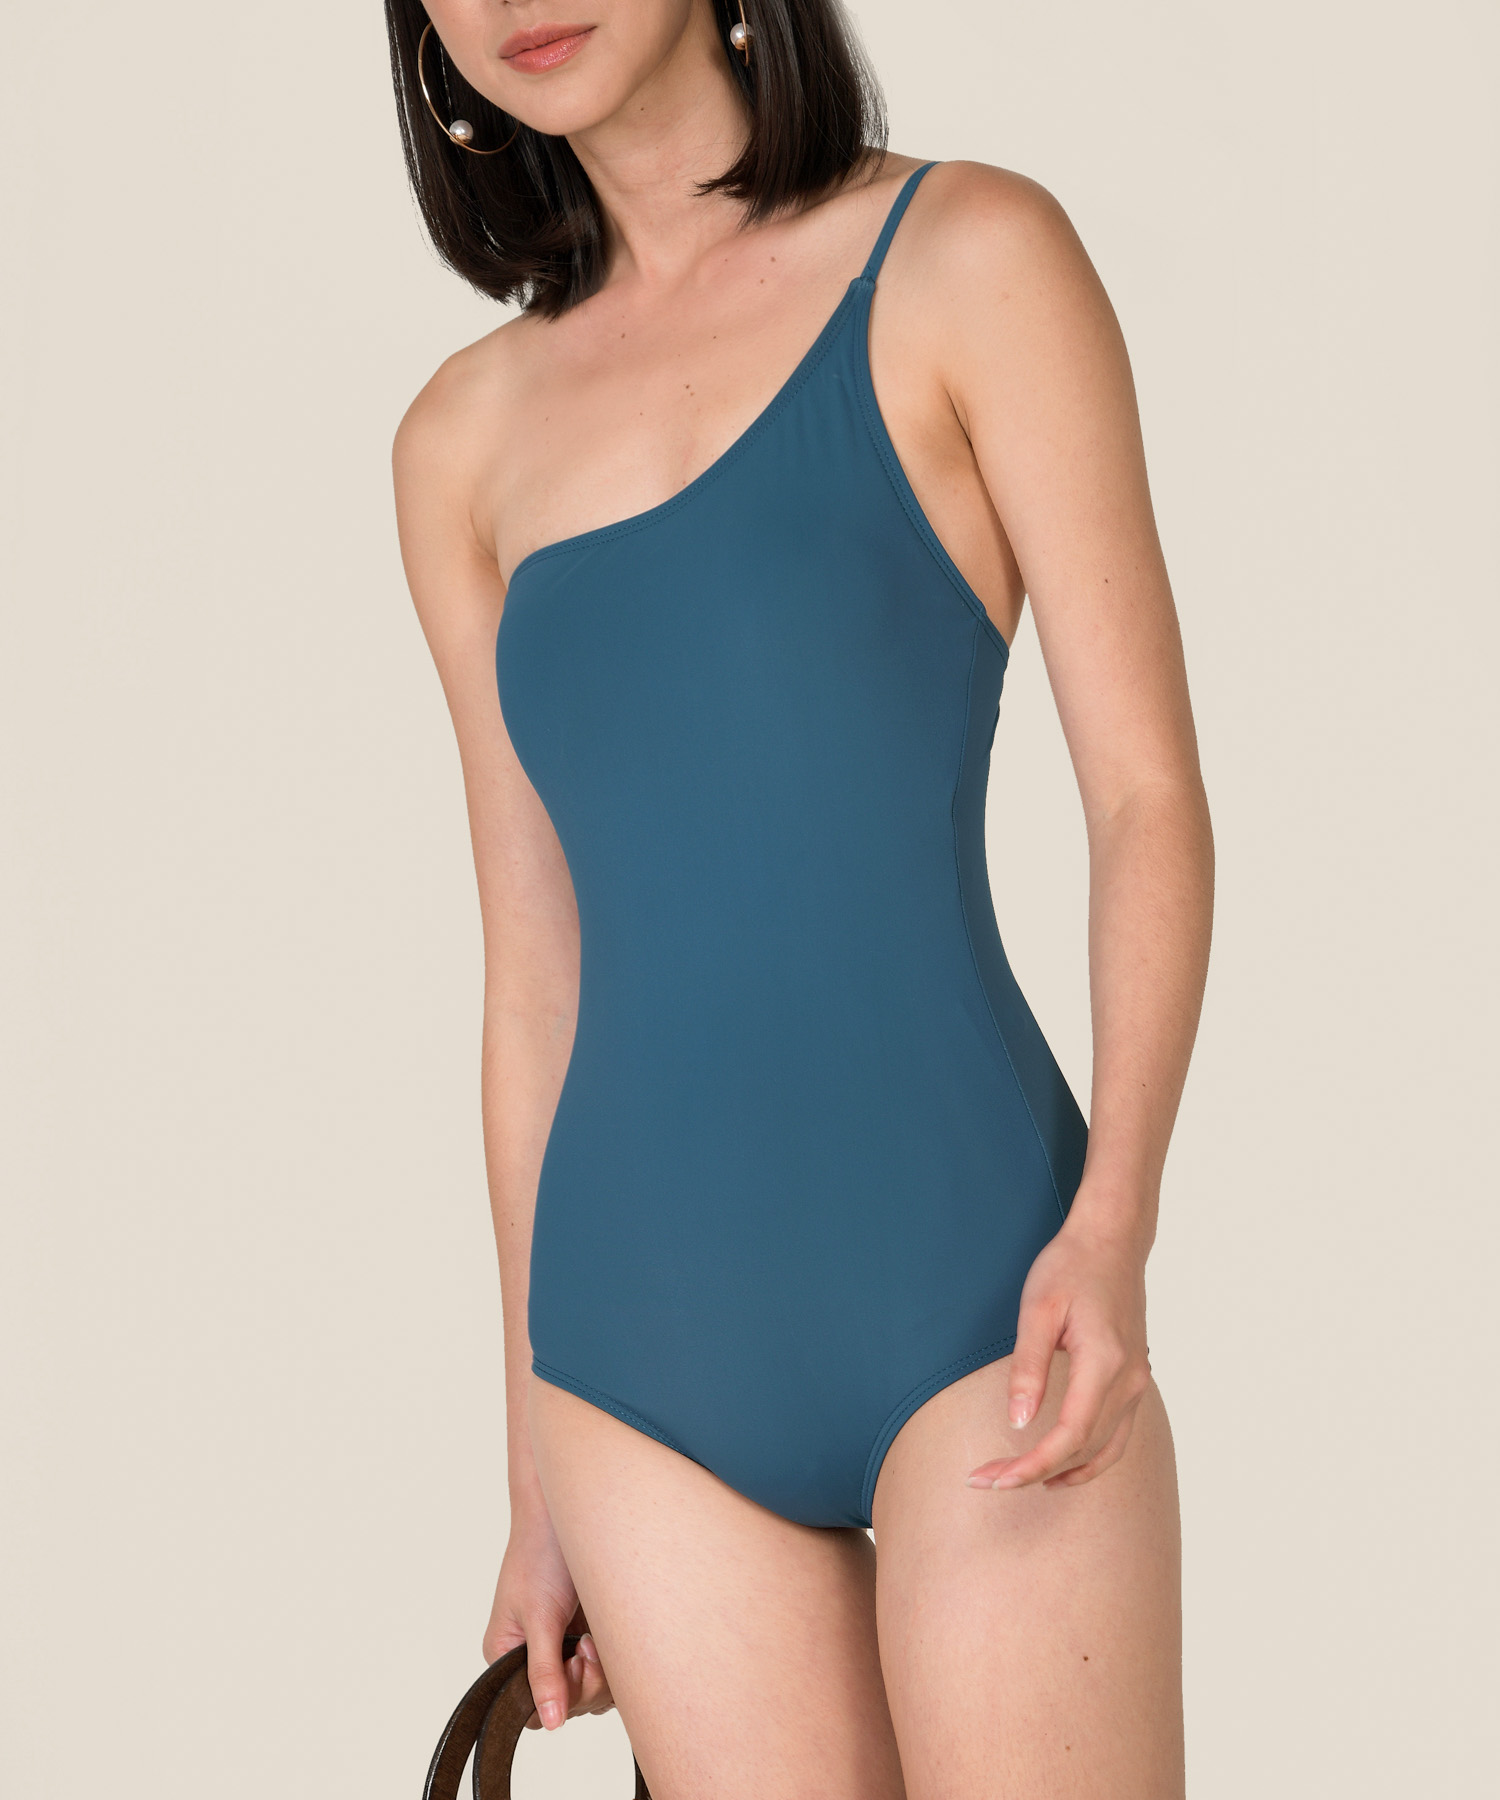 Paradise Bay Toga Swimsuit Teal